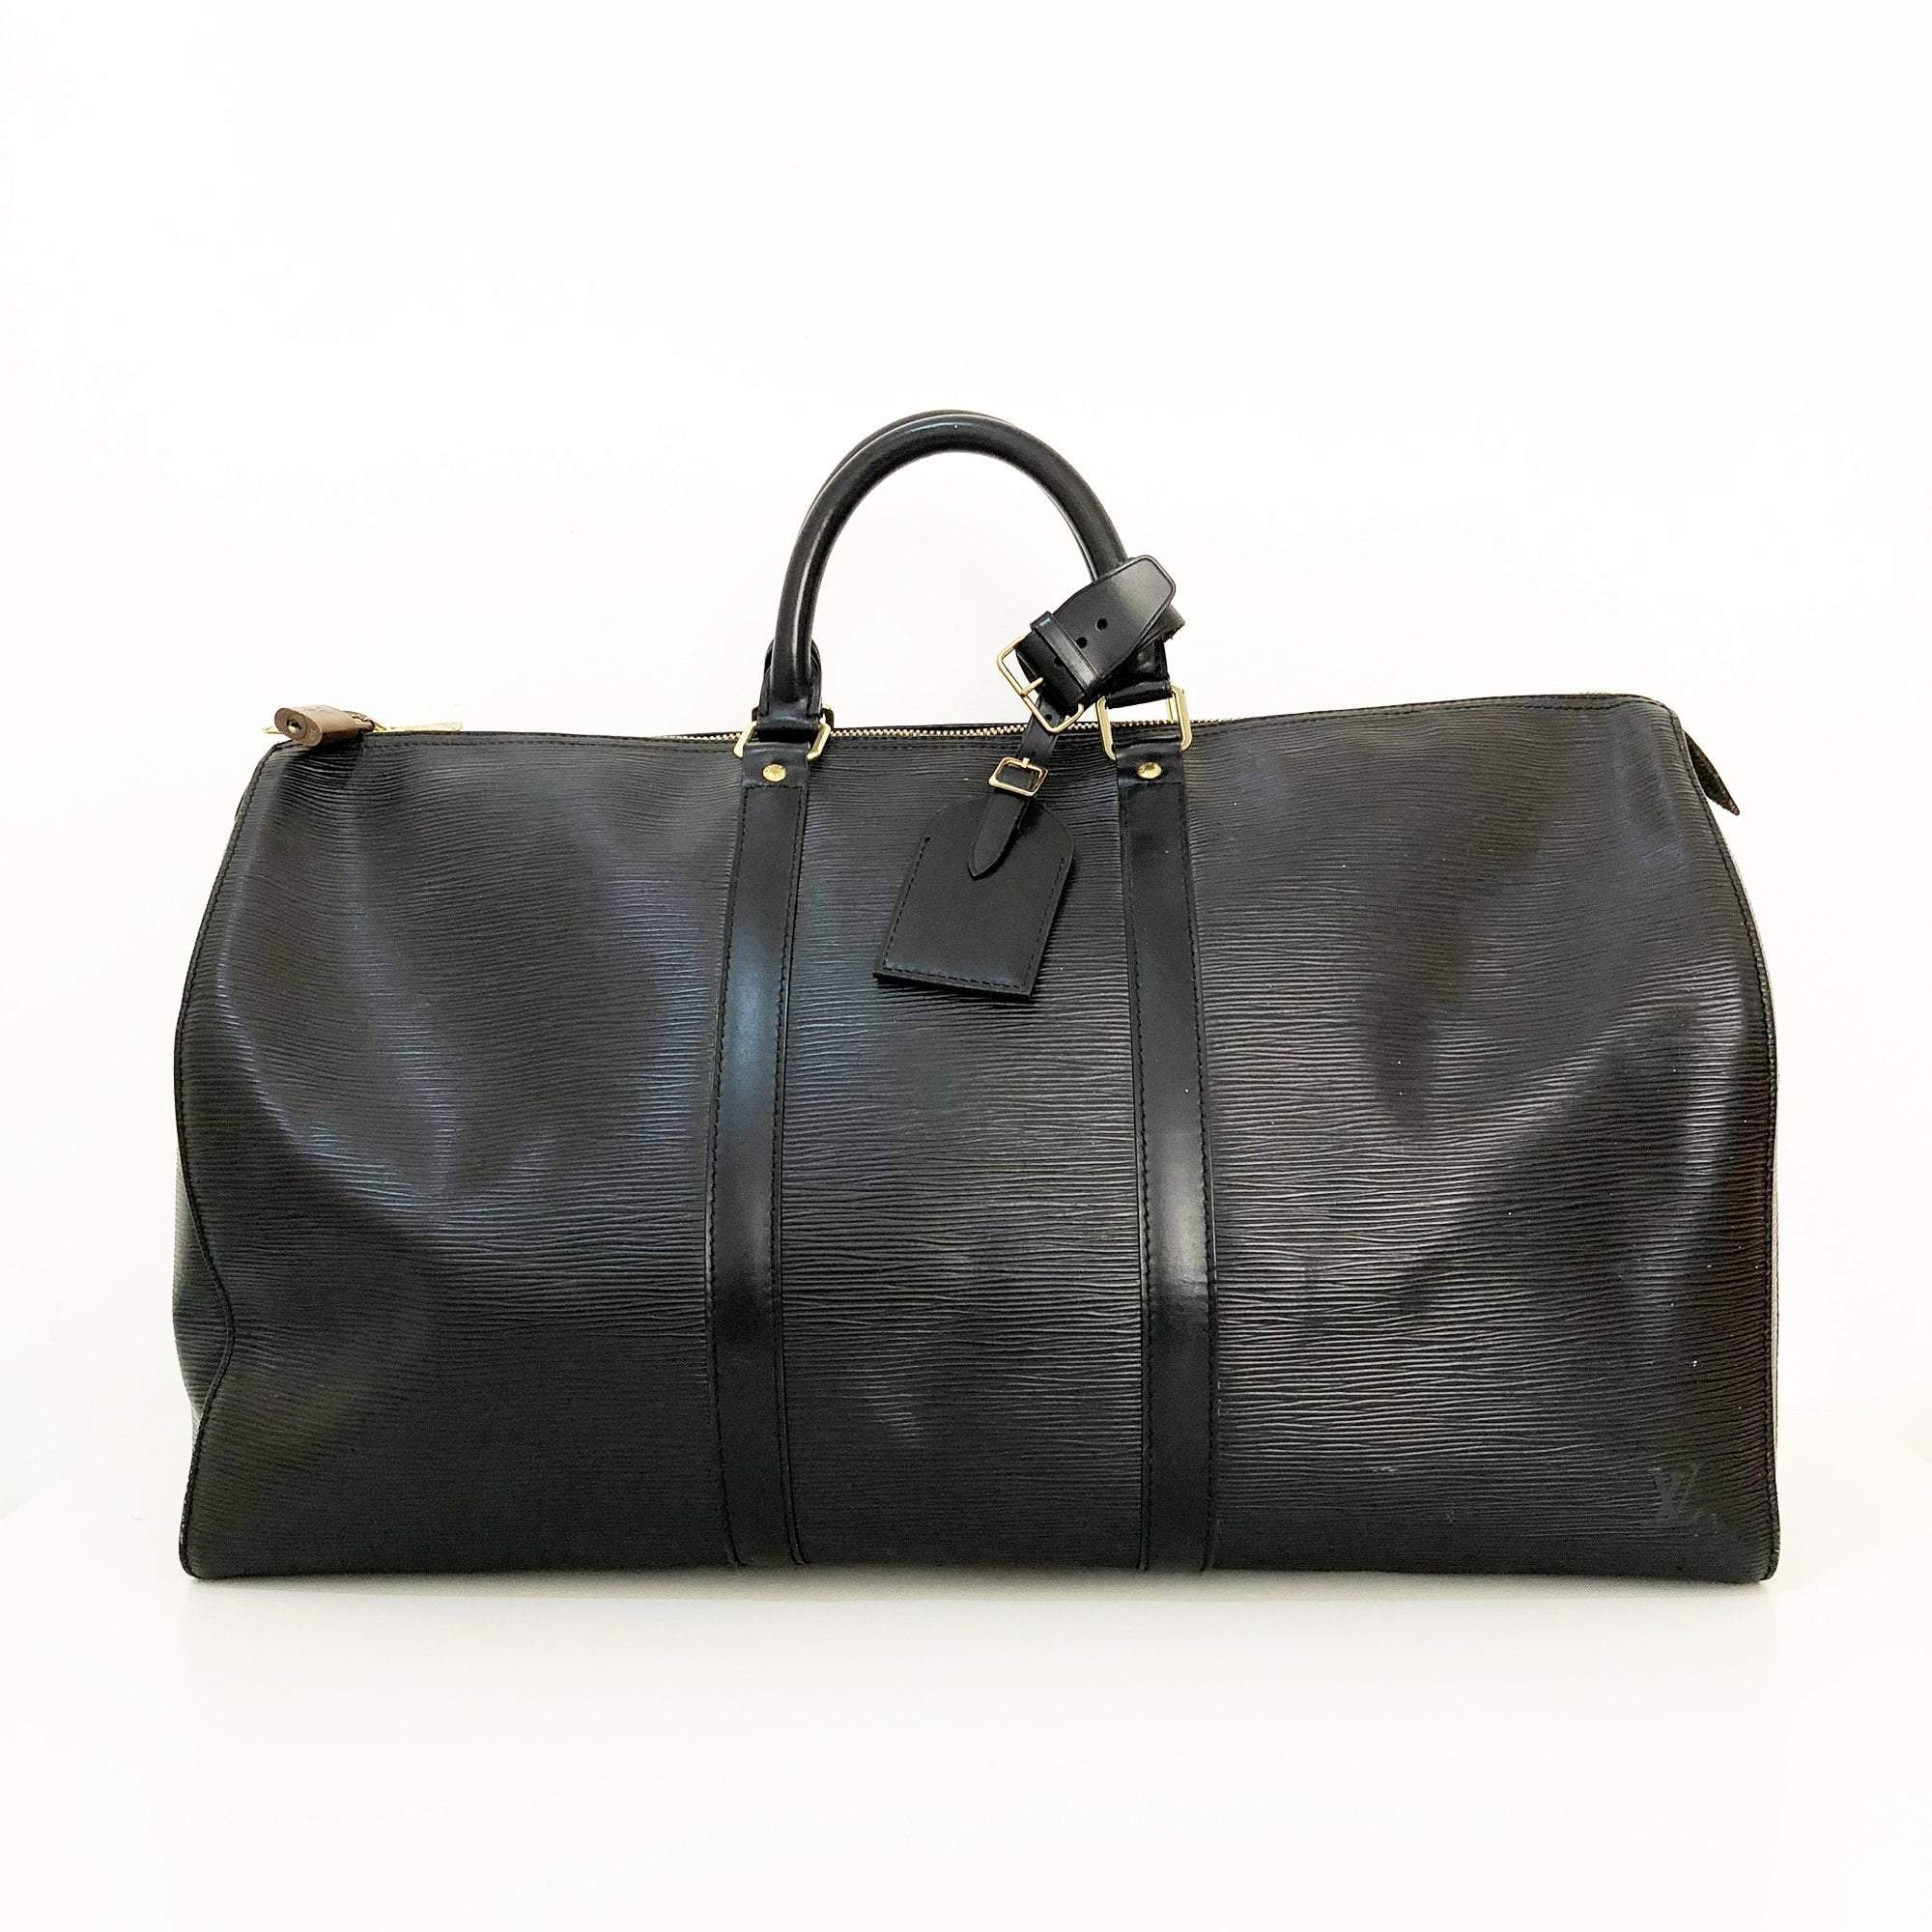 Louis Vuitton Black Epi Leather Keepall  50